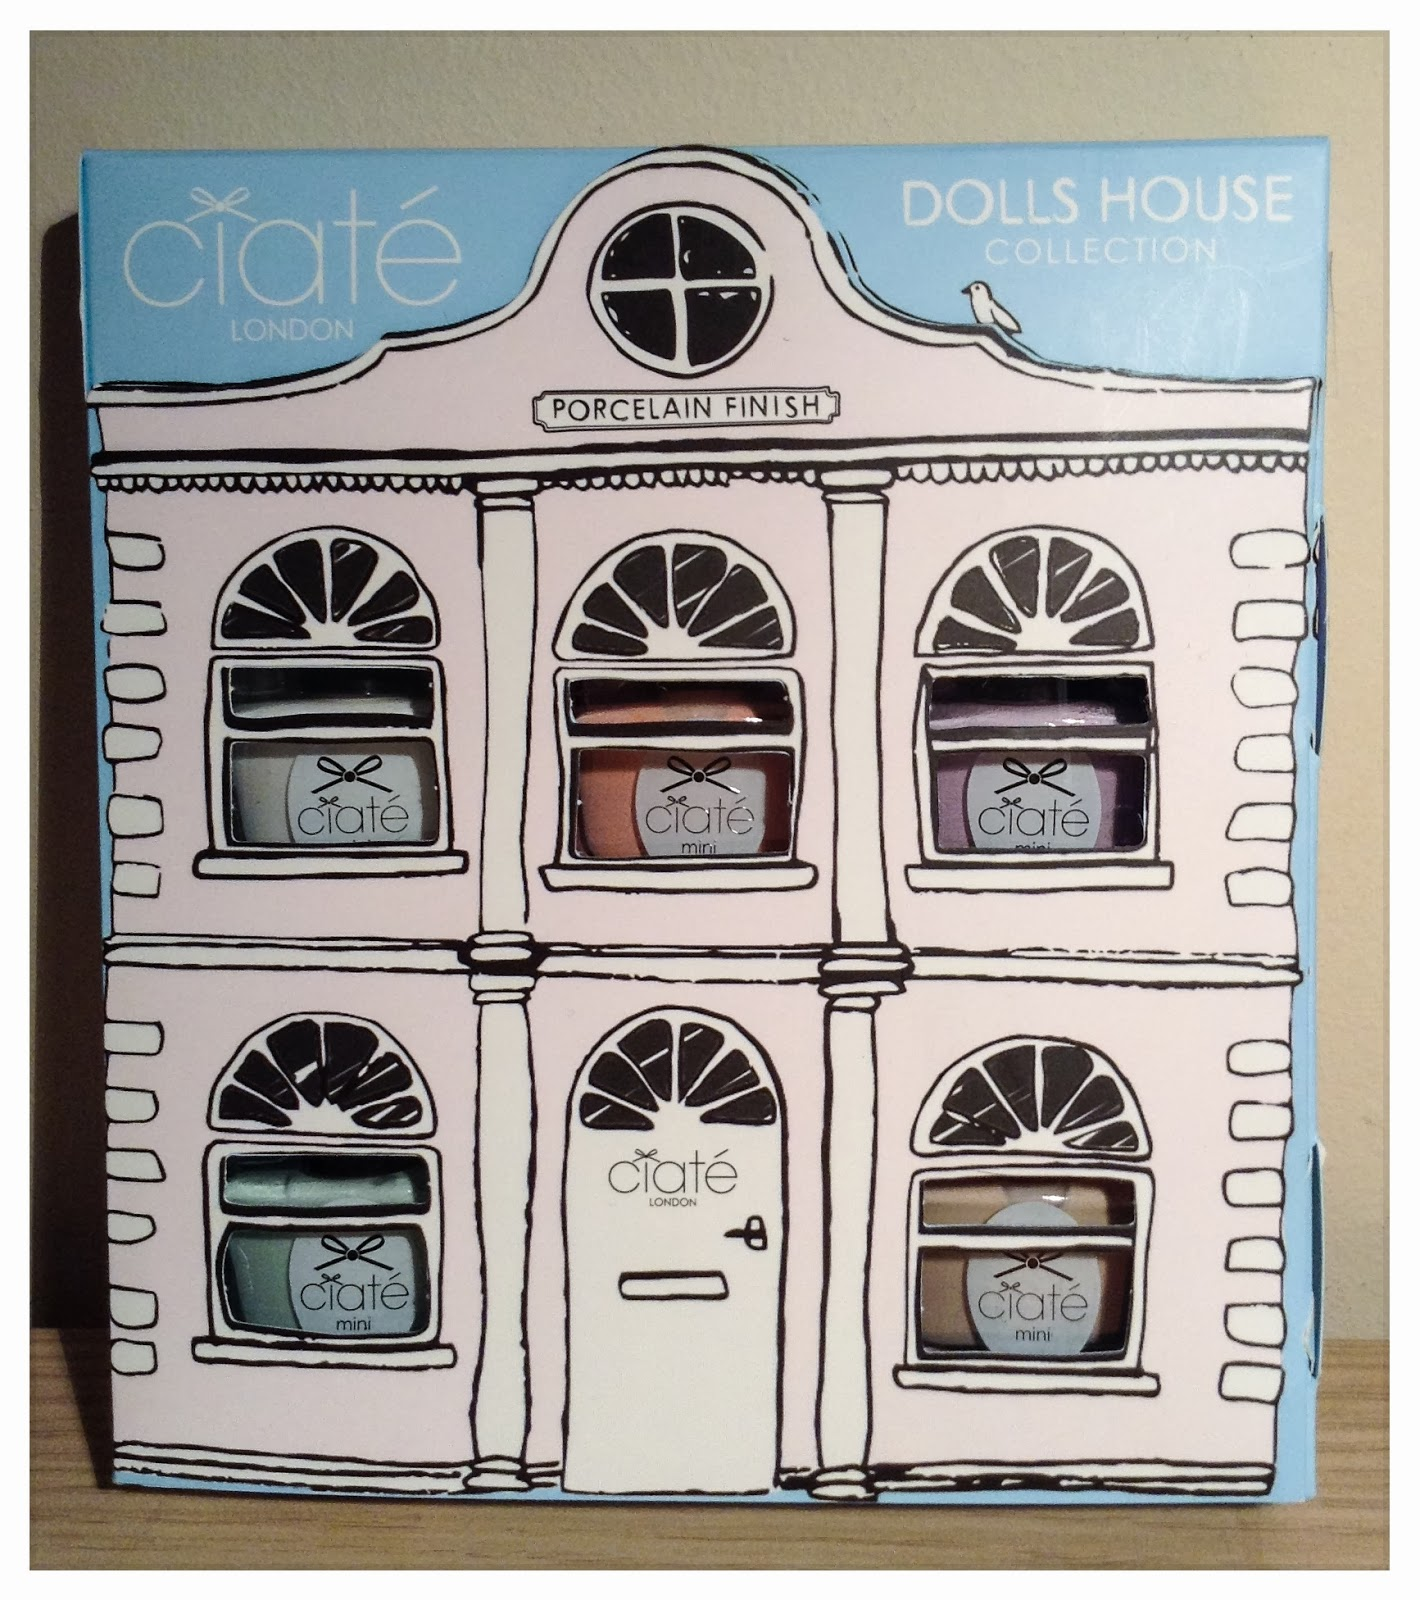 Ciate-Dolls-House-Collection-review